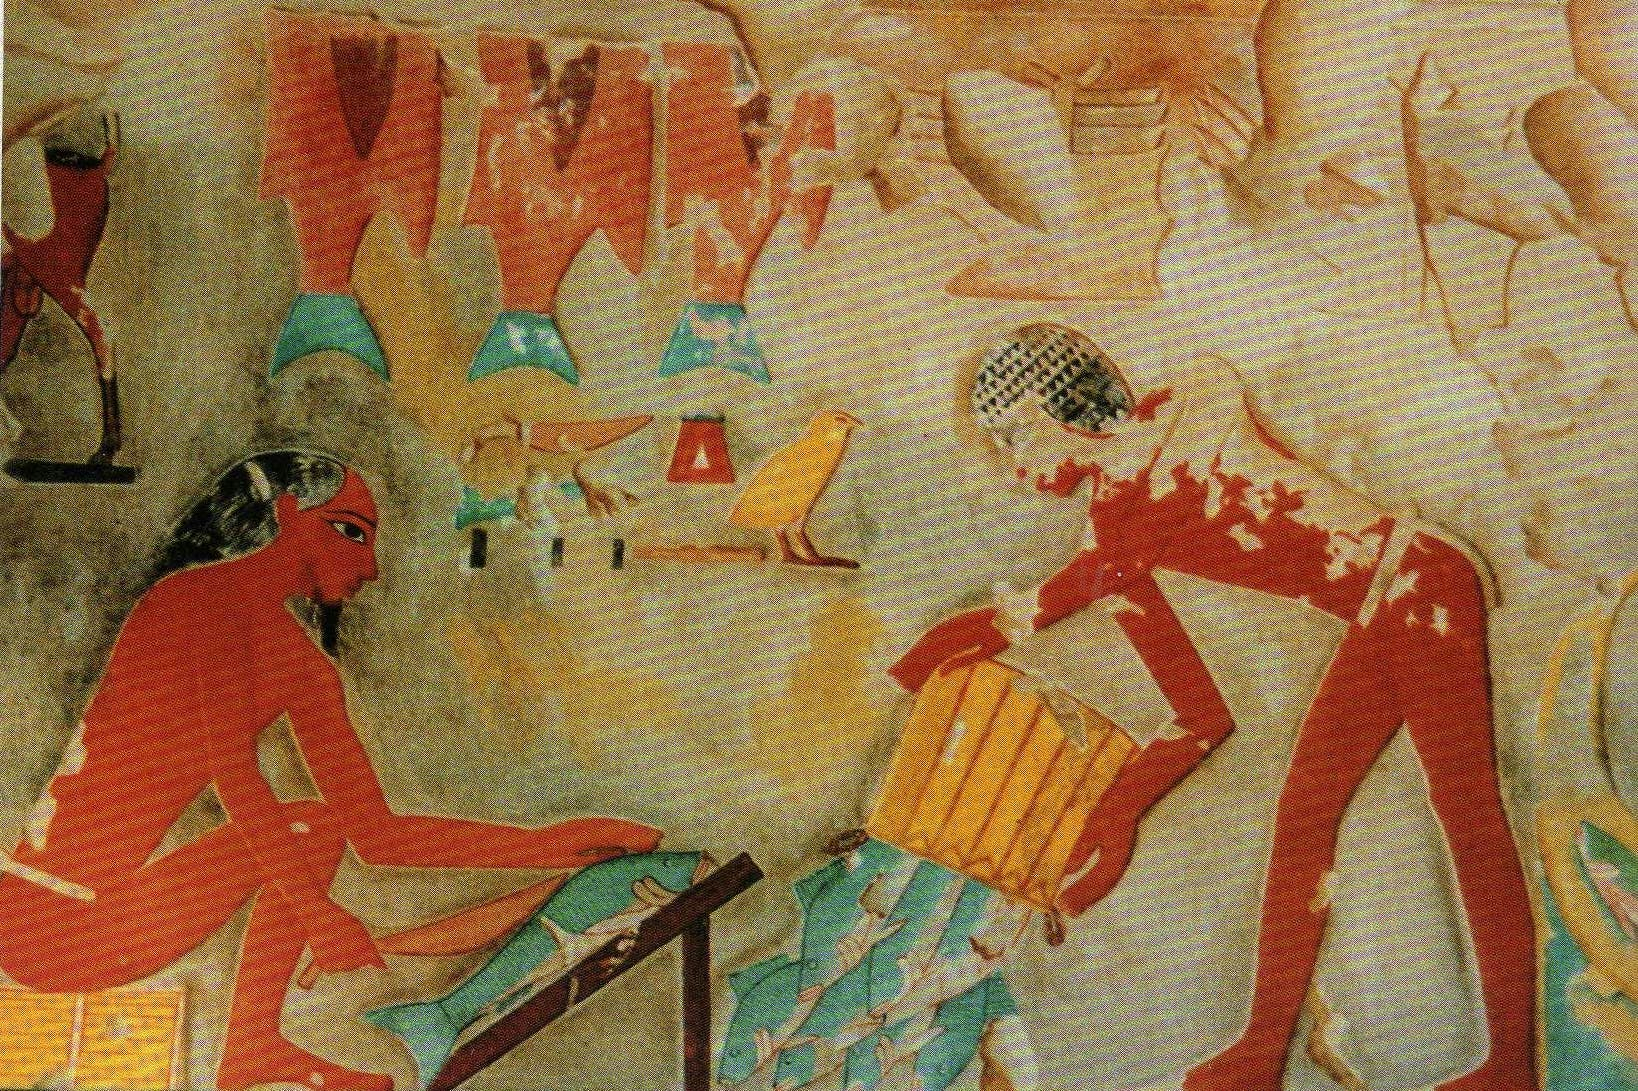 In an ancient Egyptian engraving, fisherman collect and skin the days' haul (Wikimedia Commons)